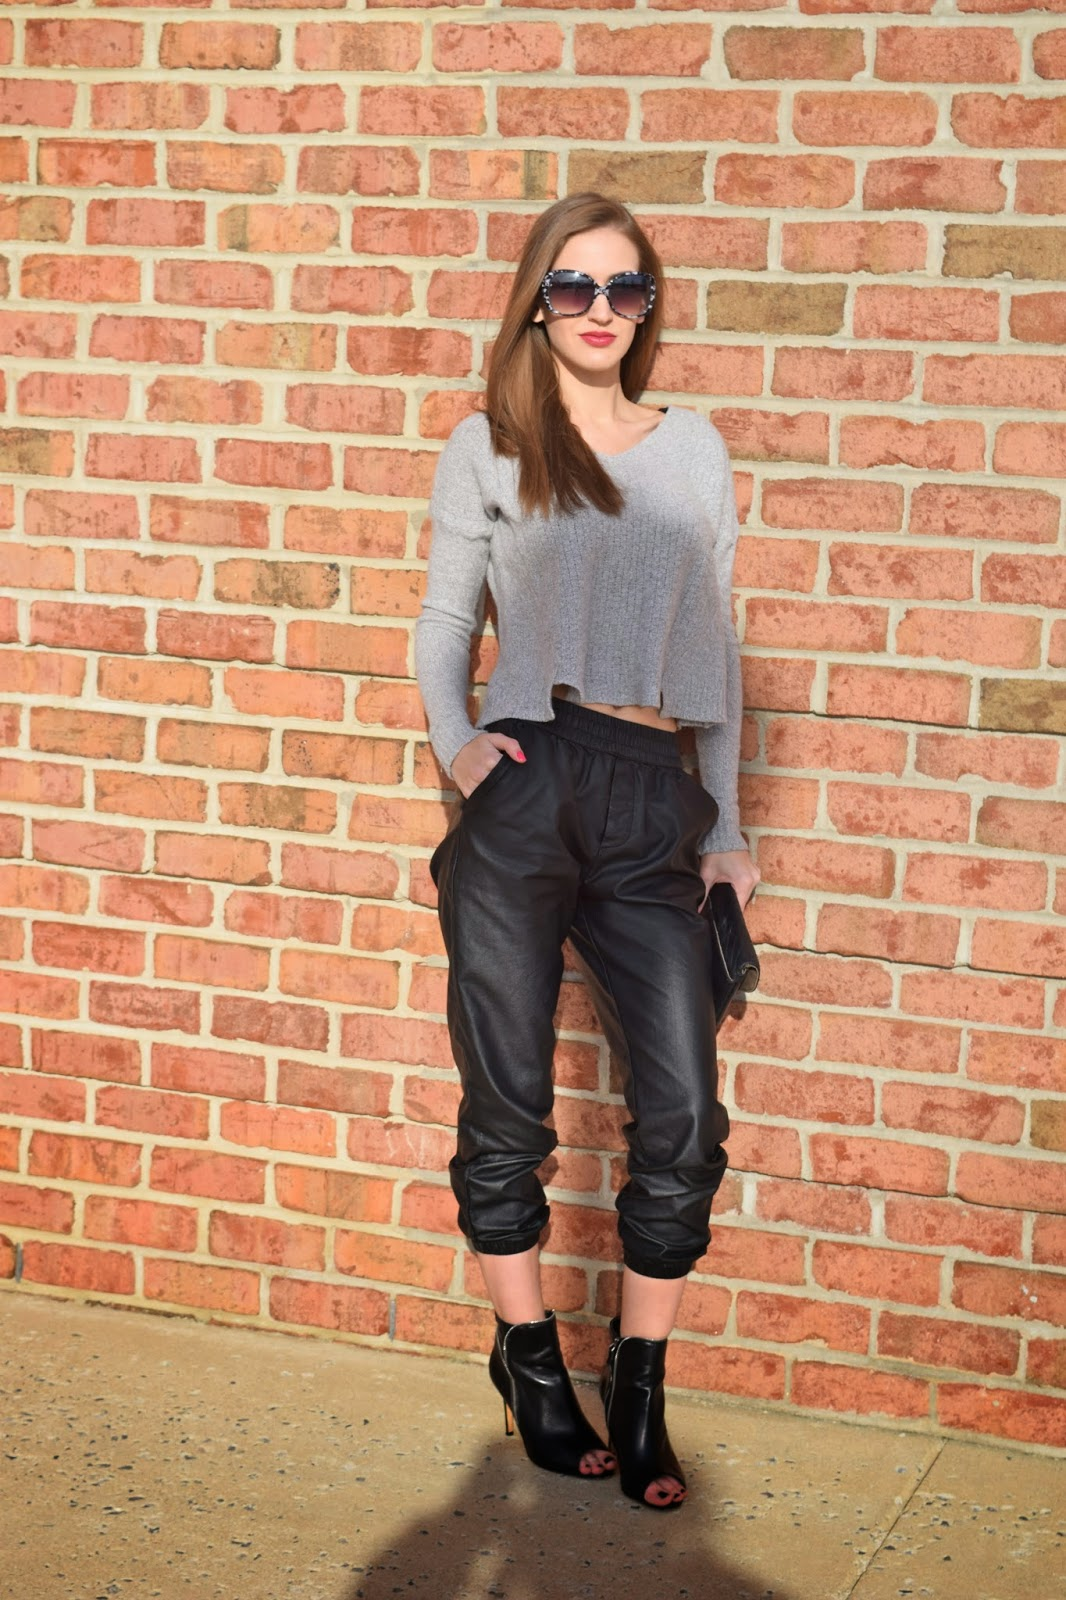 Wearing leather jogging pants, grey crop top sweater, halogen peep toe leather booties